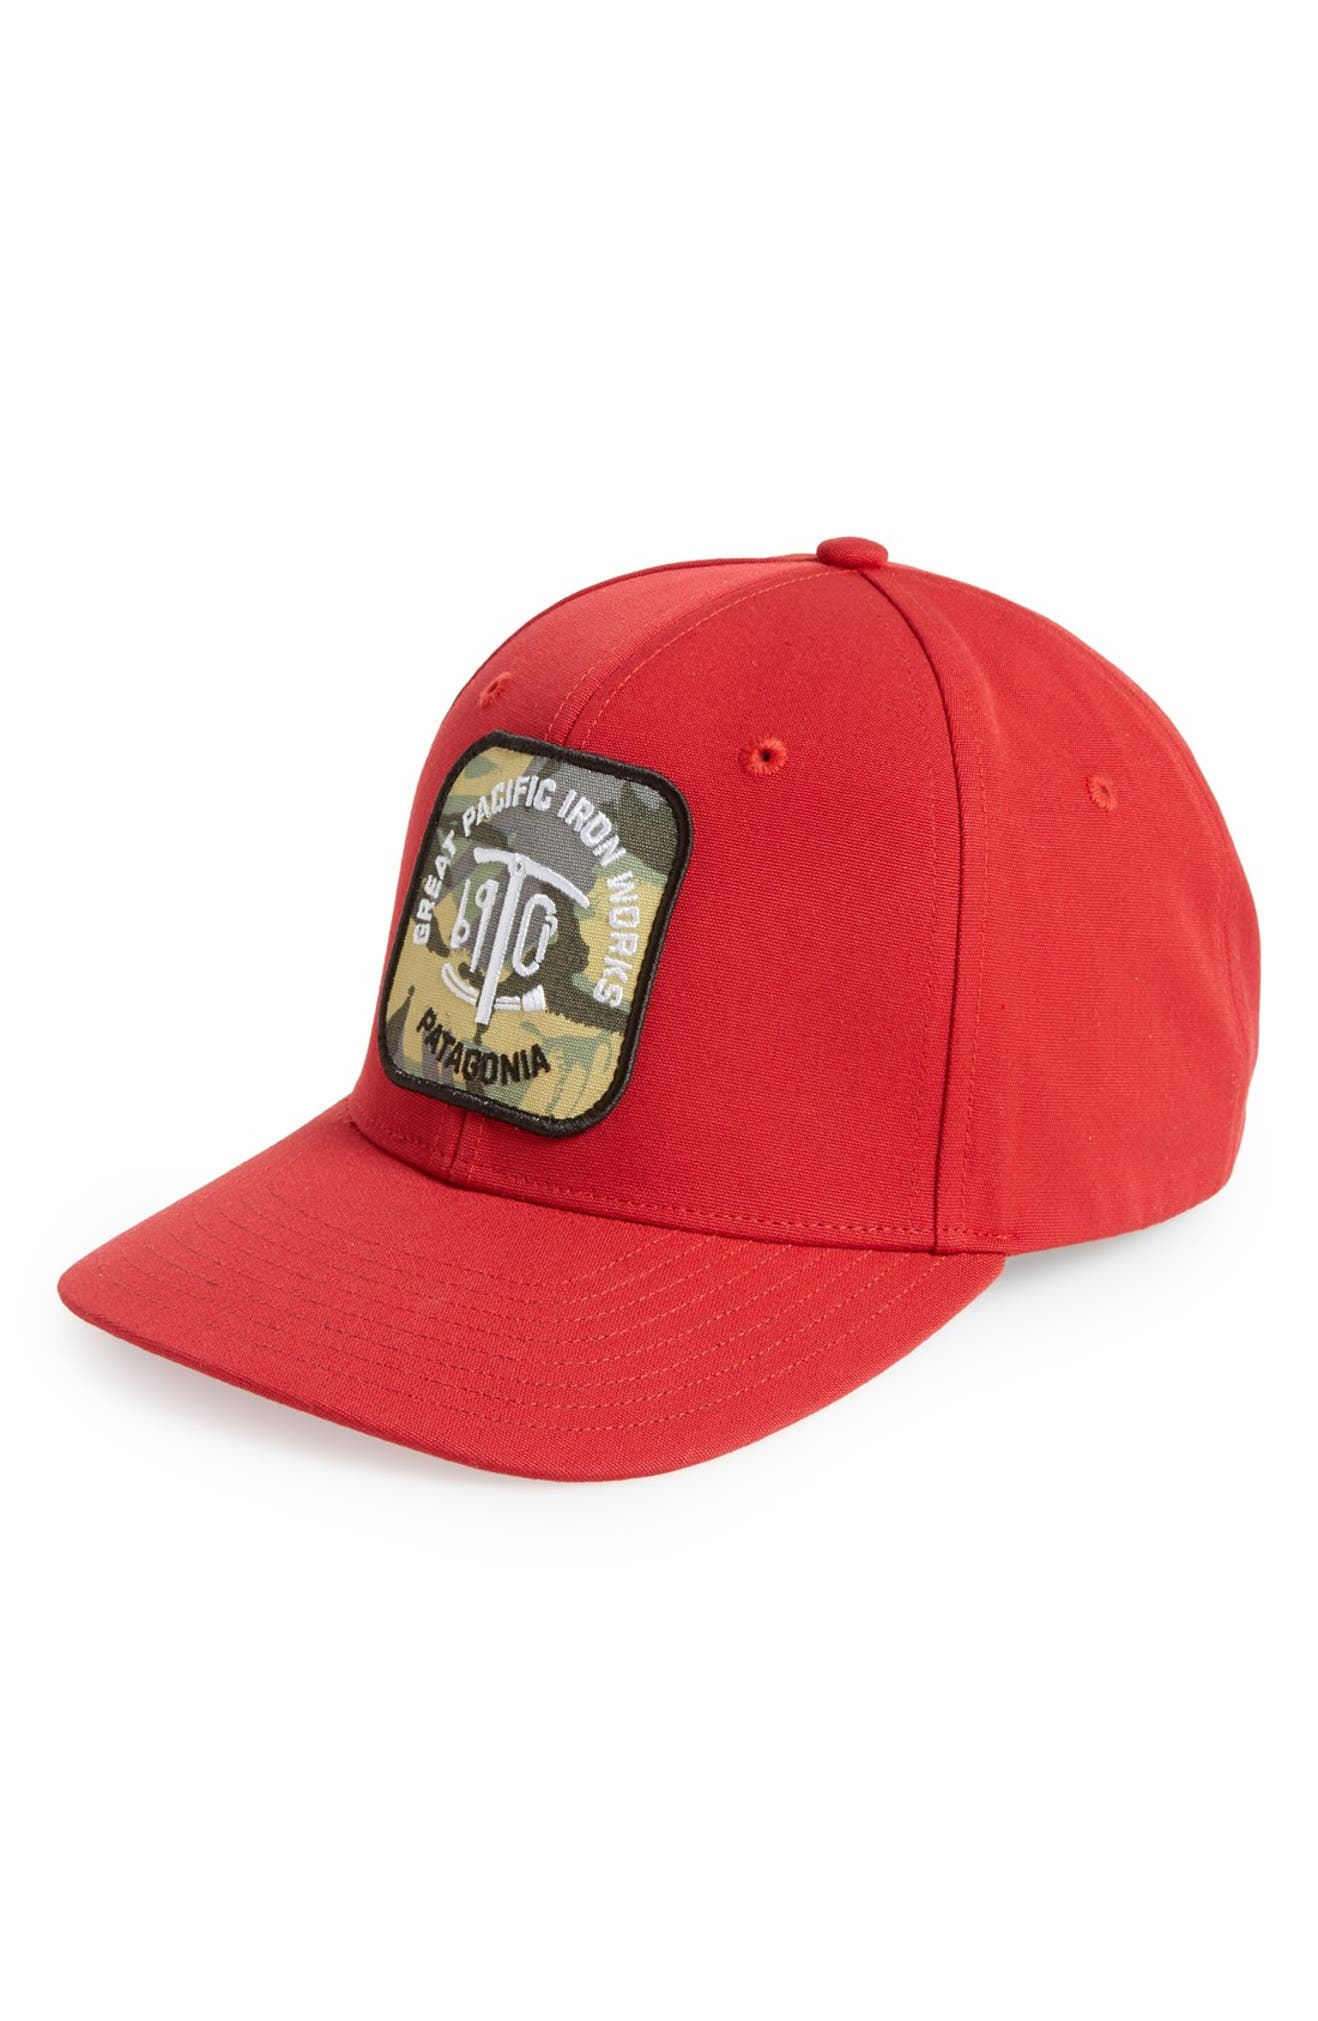 Patagonia  Great Pacific Iron Works - Roger That  Hat  3408bed7398